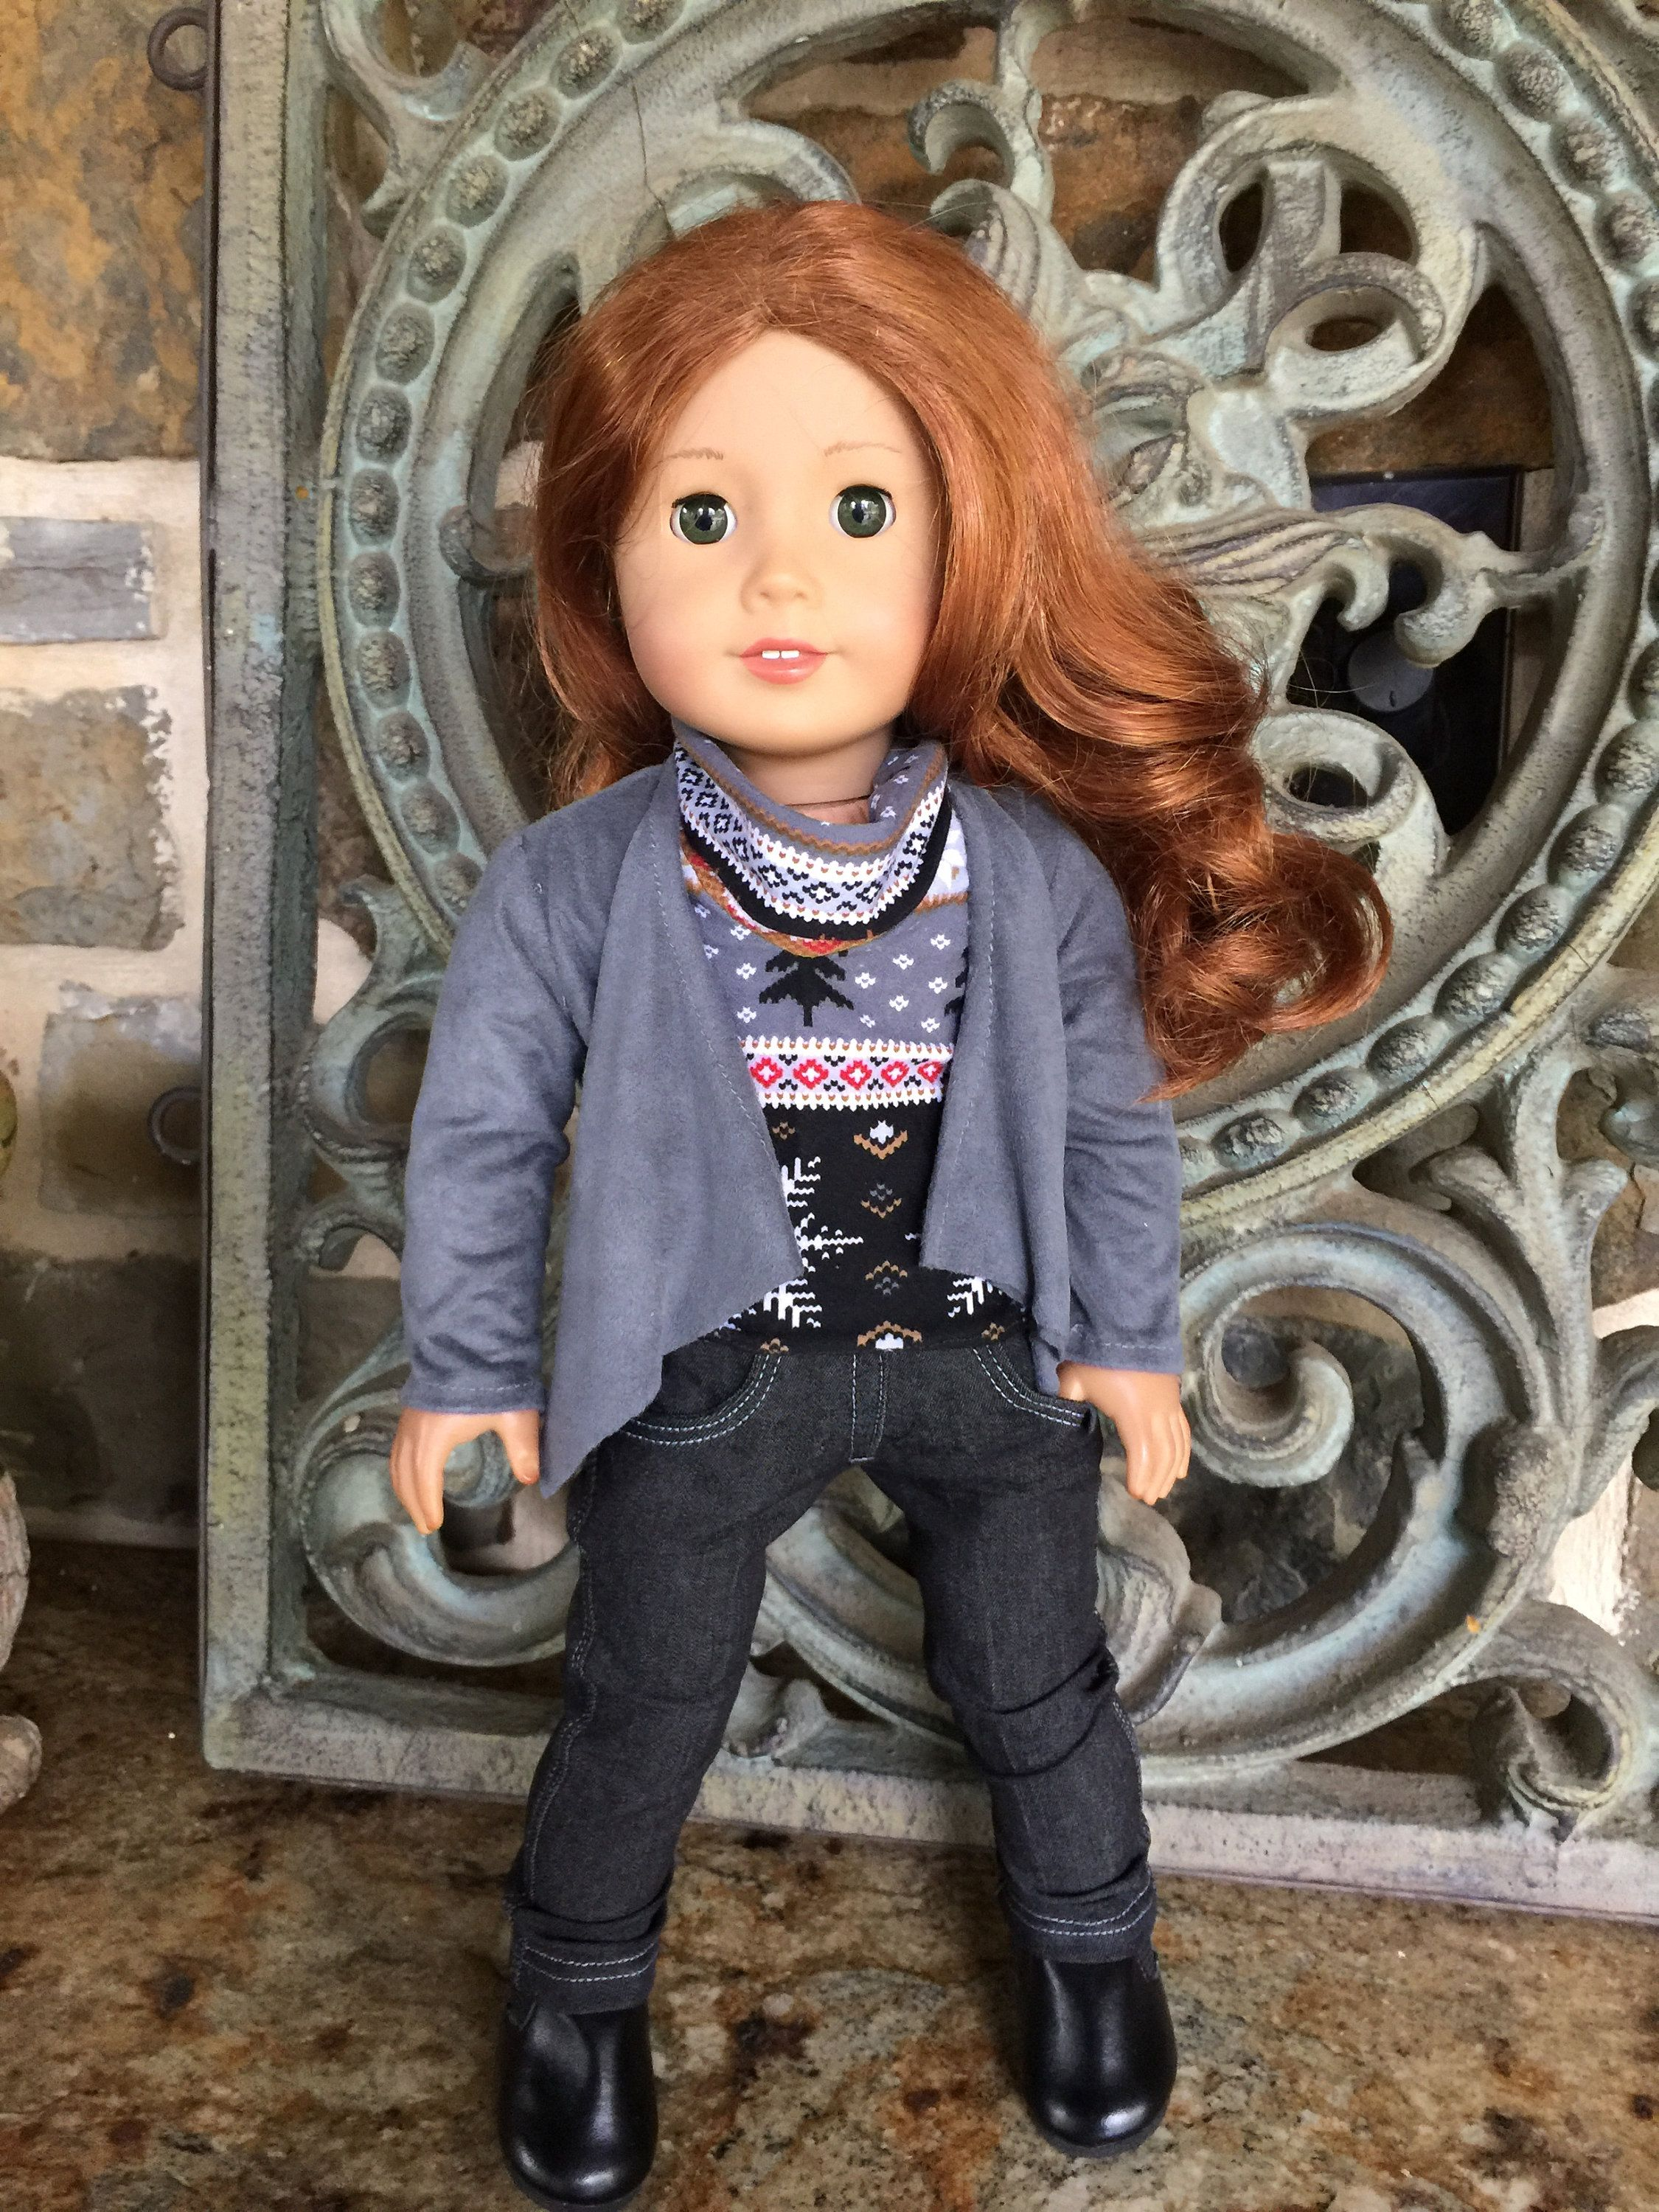 18 inch doll clothes made to fit dolls like the American Girl Doll- Soft grey suede cloth jacket-cowl neck top #18inchdollsandclothes